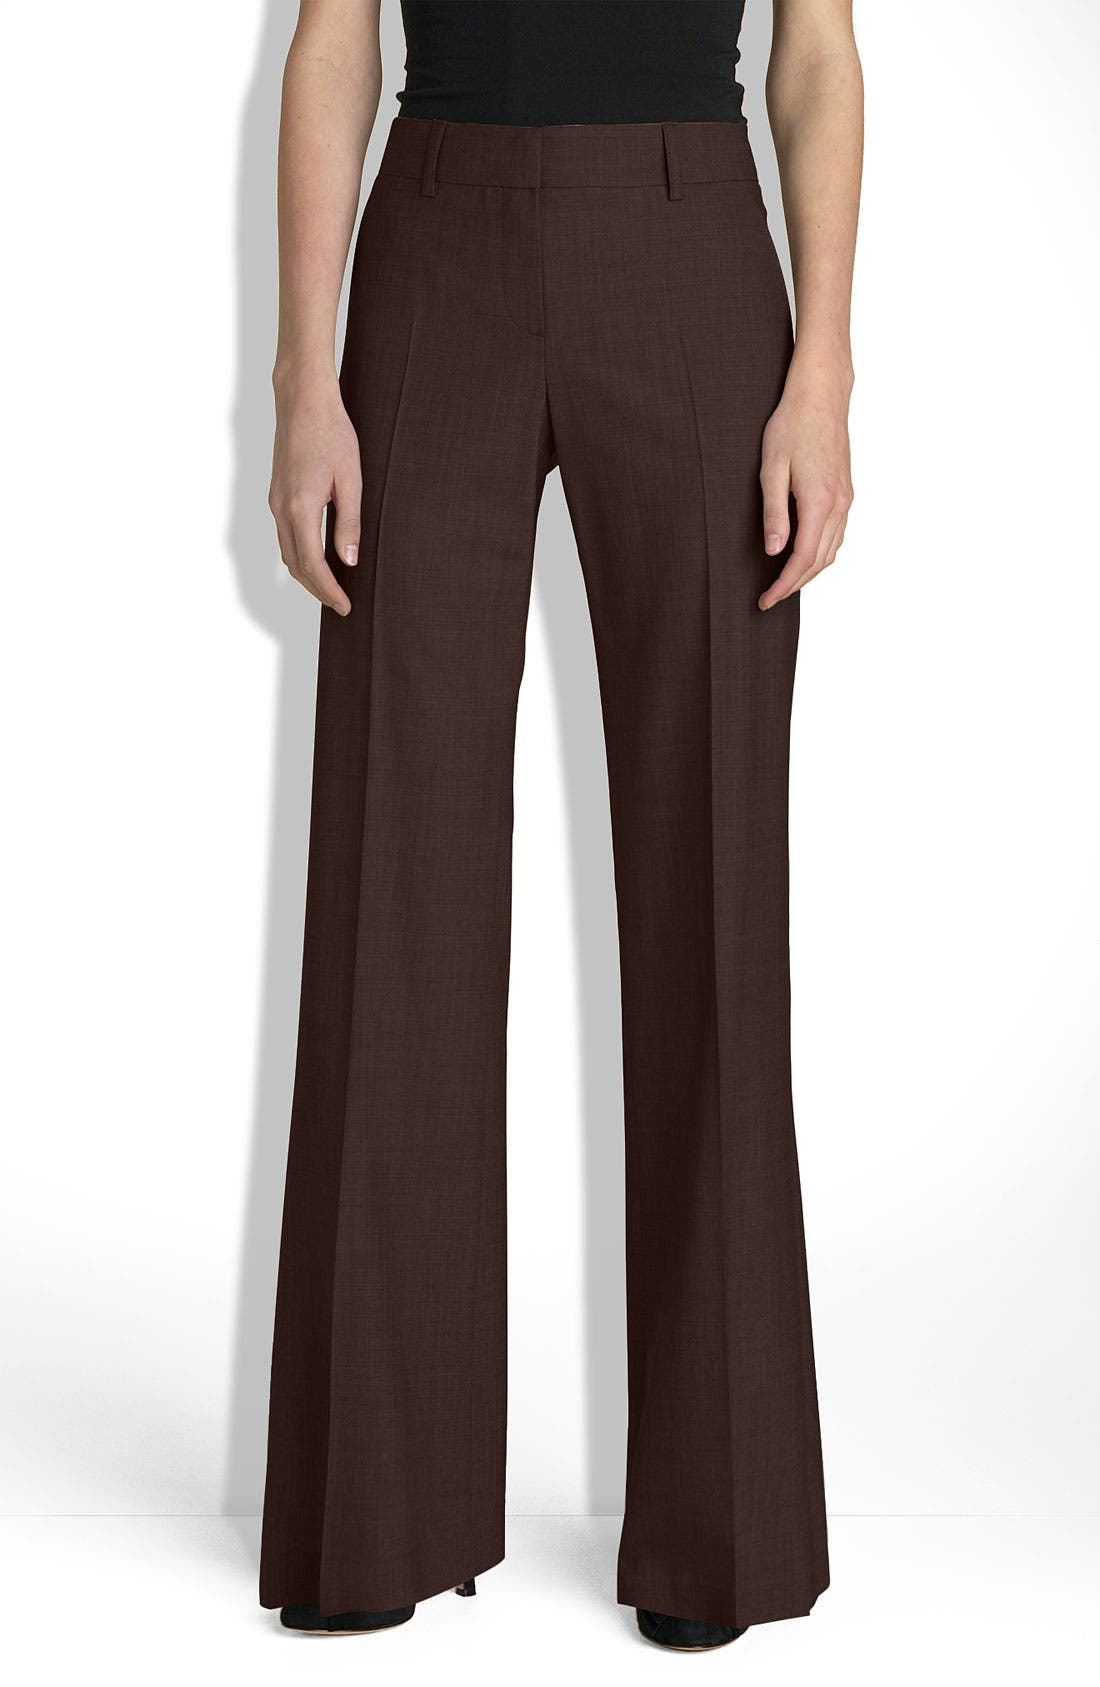 Alternate Image 1 Selected - Theory 'Emery - Tailor' Bootcut Trousers